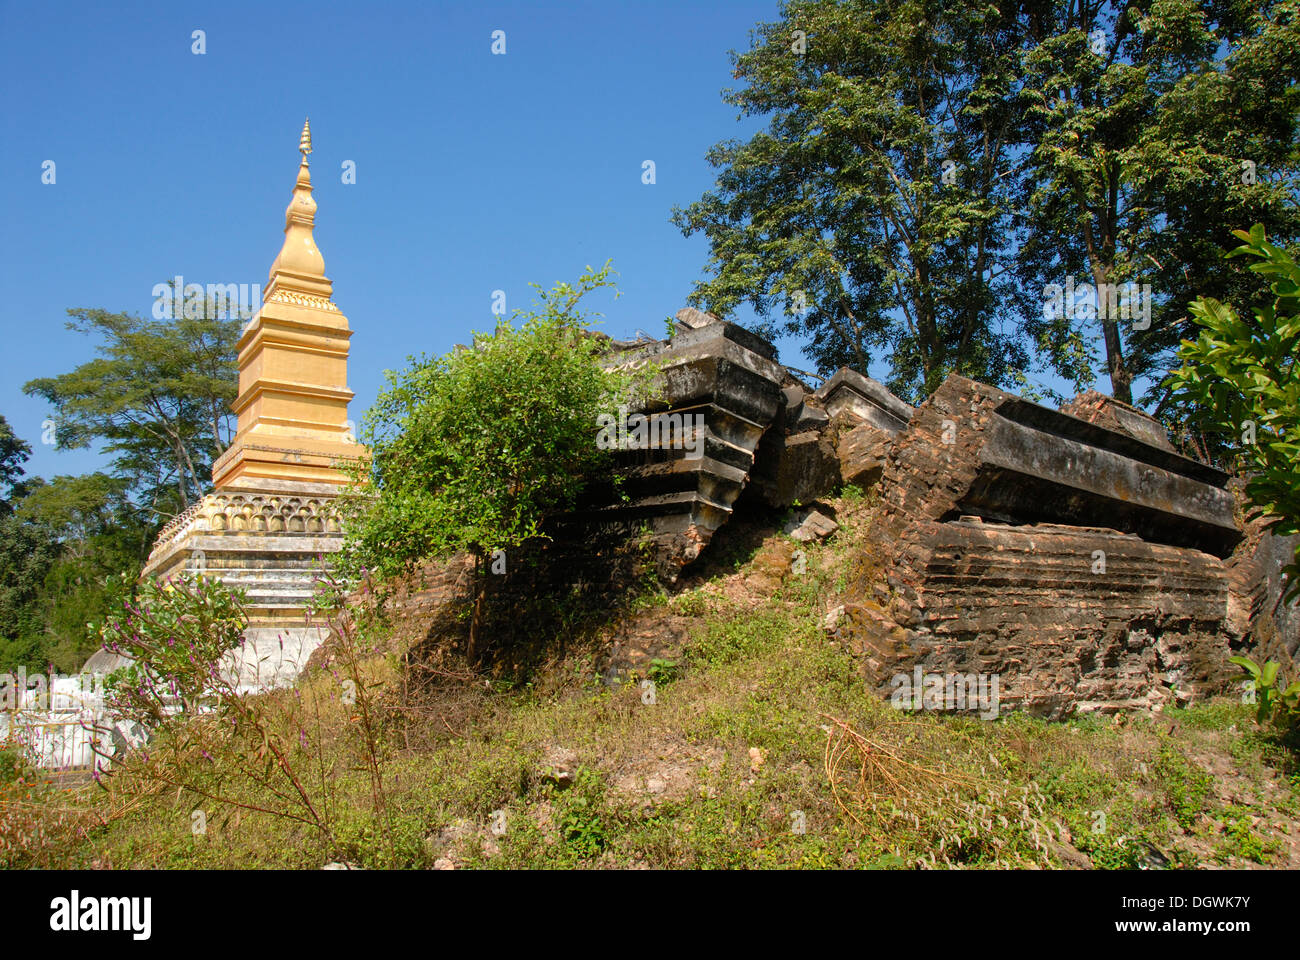 Theravada Buddhism, destruction, new stupa and old stupa destroyed in a bomb attack in the Vietnam War - Stock Image